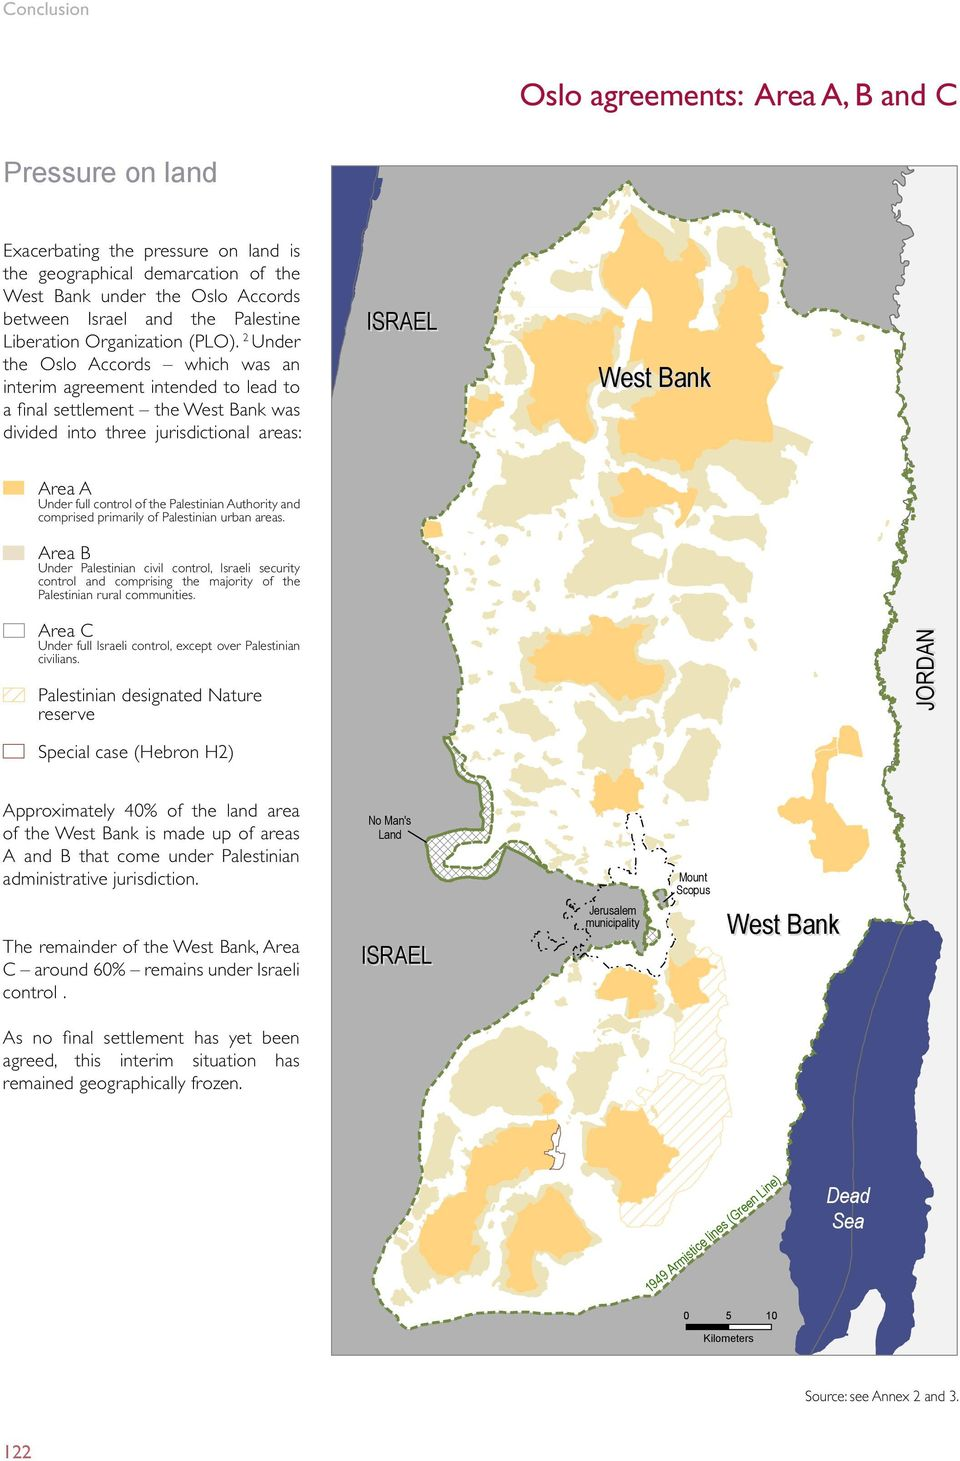 2 Under the Oslo Accords which was an interim agreement intended to lead to a final settlement the was divided into three jurisdictional areas: Area A Under full control of the Palestinian Authority